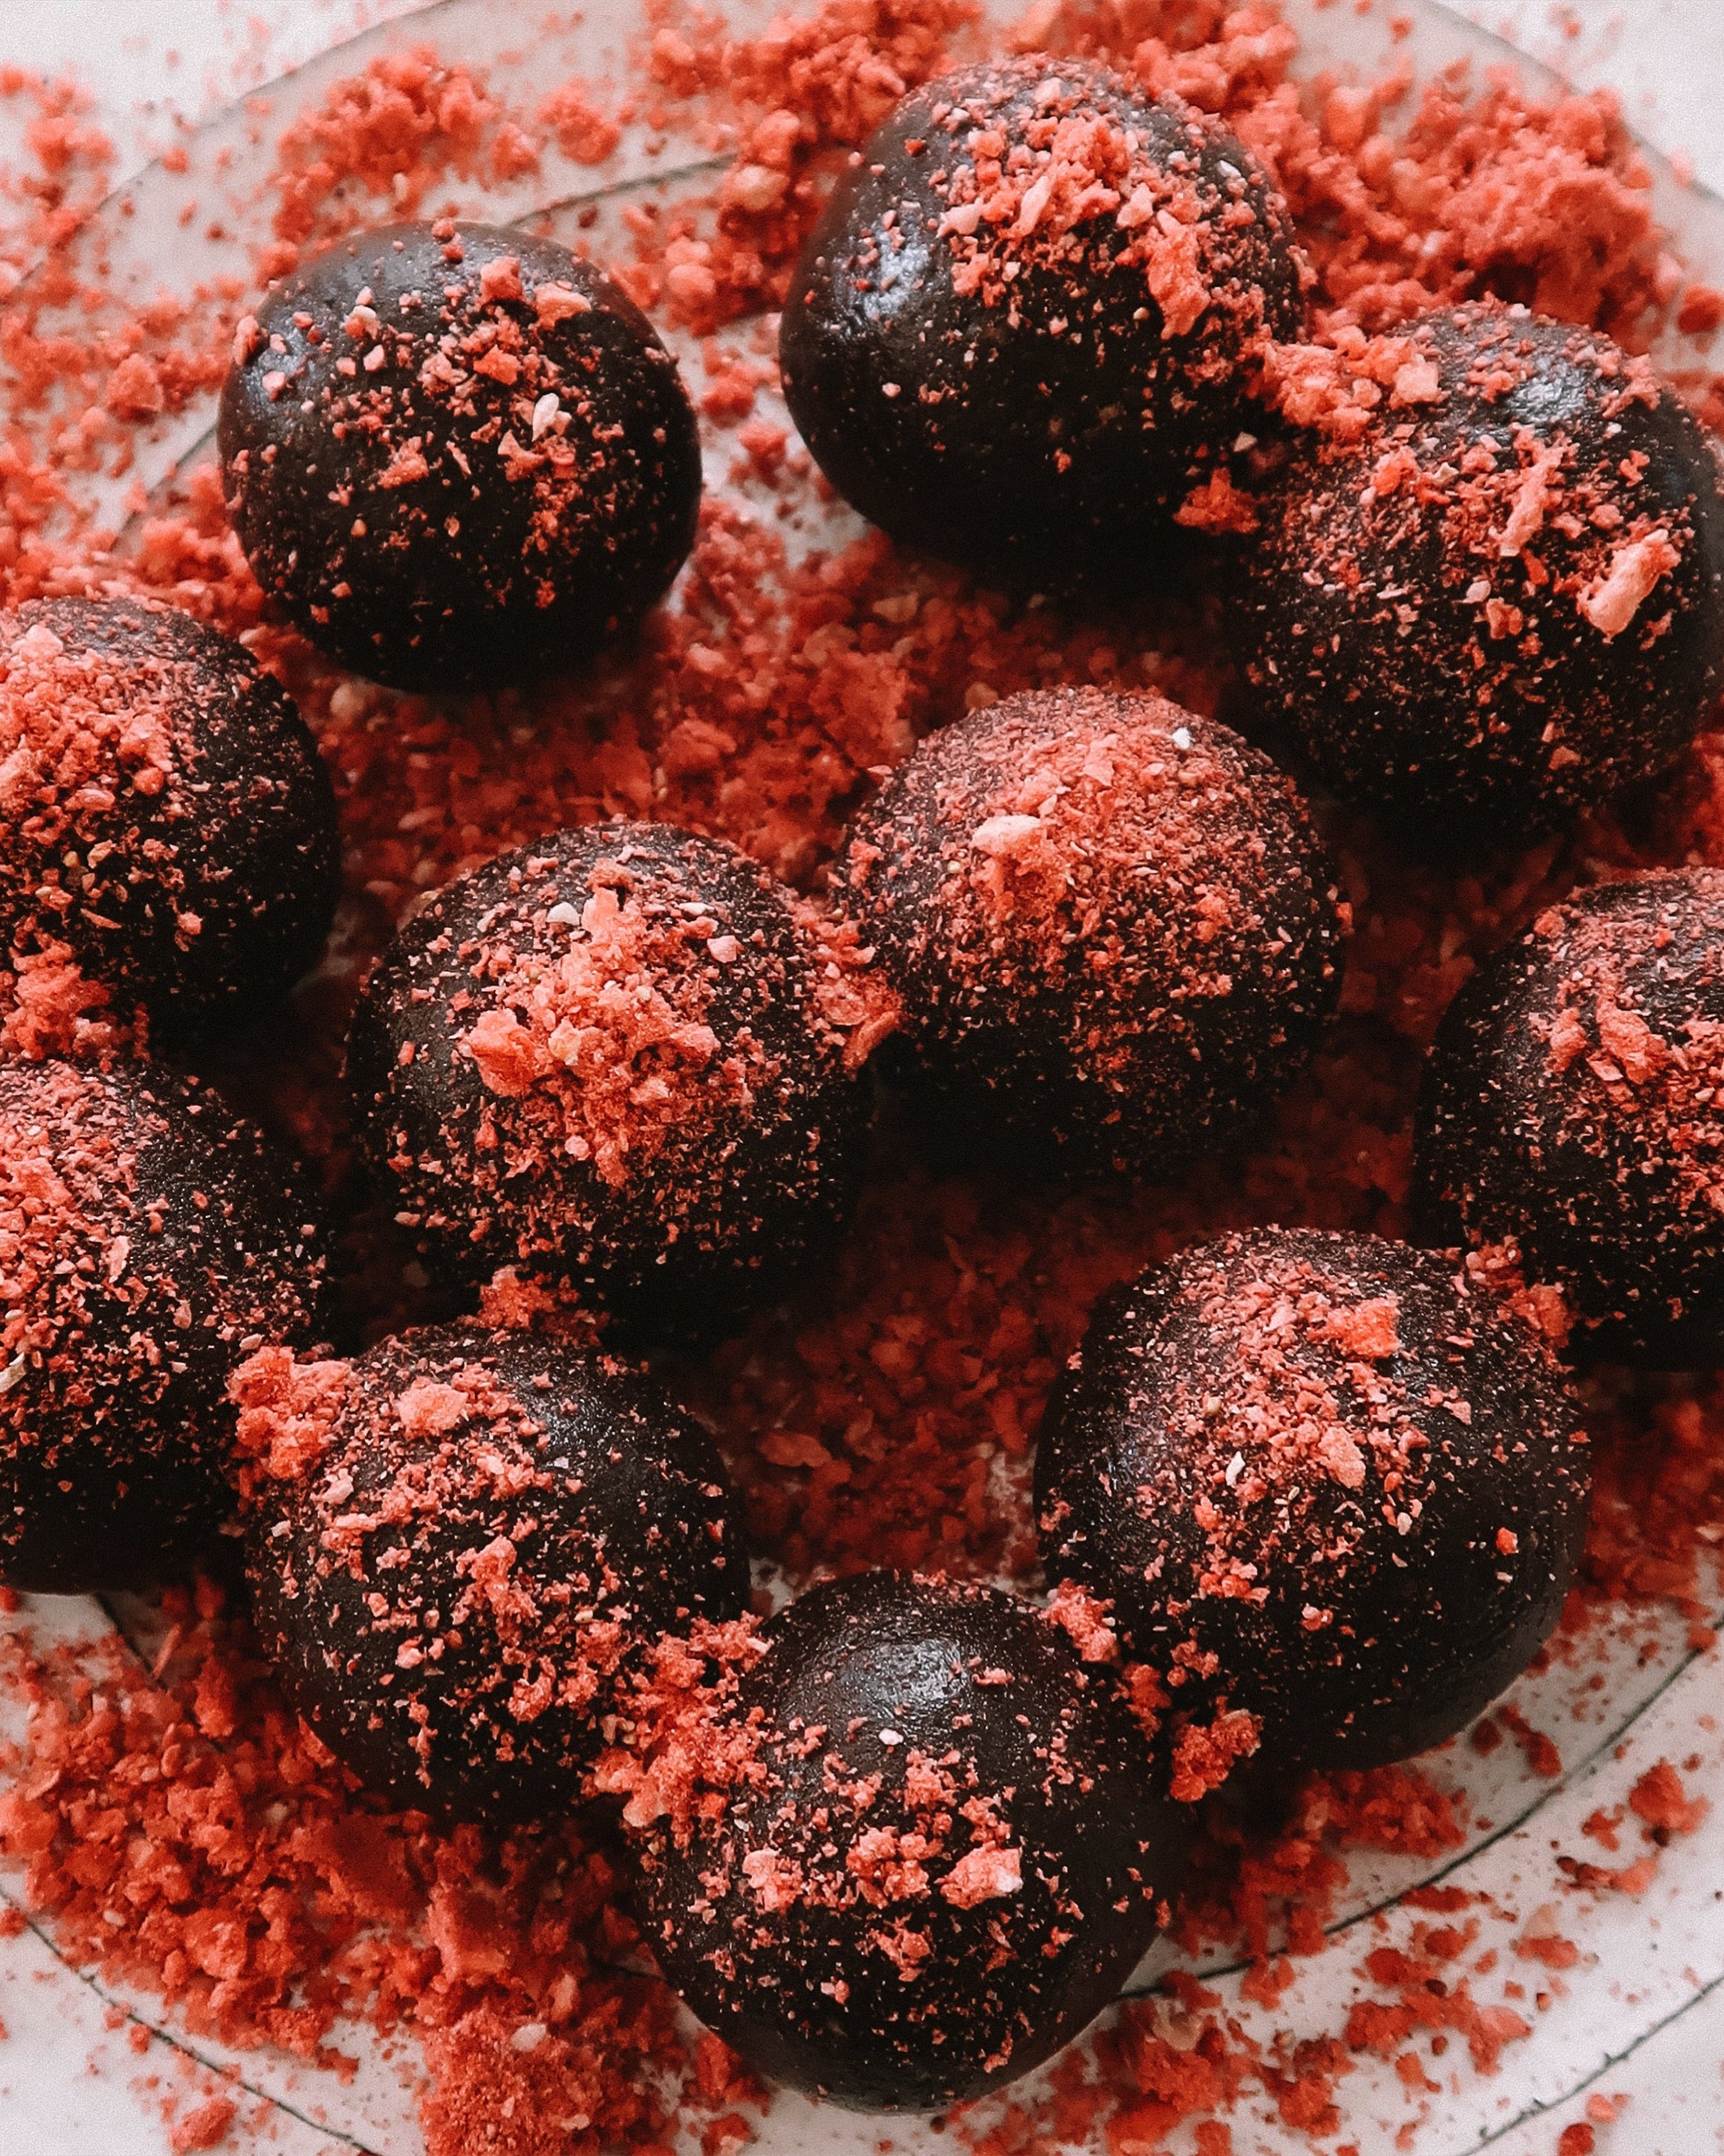 STRAWBERRY HAZELNUT BITES - INGREDIENTS3/4 cup hazelnuts (raw and unsalted)1/2 cup almond butter1/2 cup (about 6) medjool dates, pitted4 tablespoons cacao powder1 tsp vanilla extract 3/4 cup powdered freeze dried strawberries (one bag)